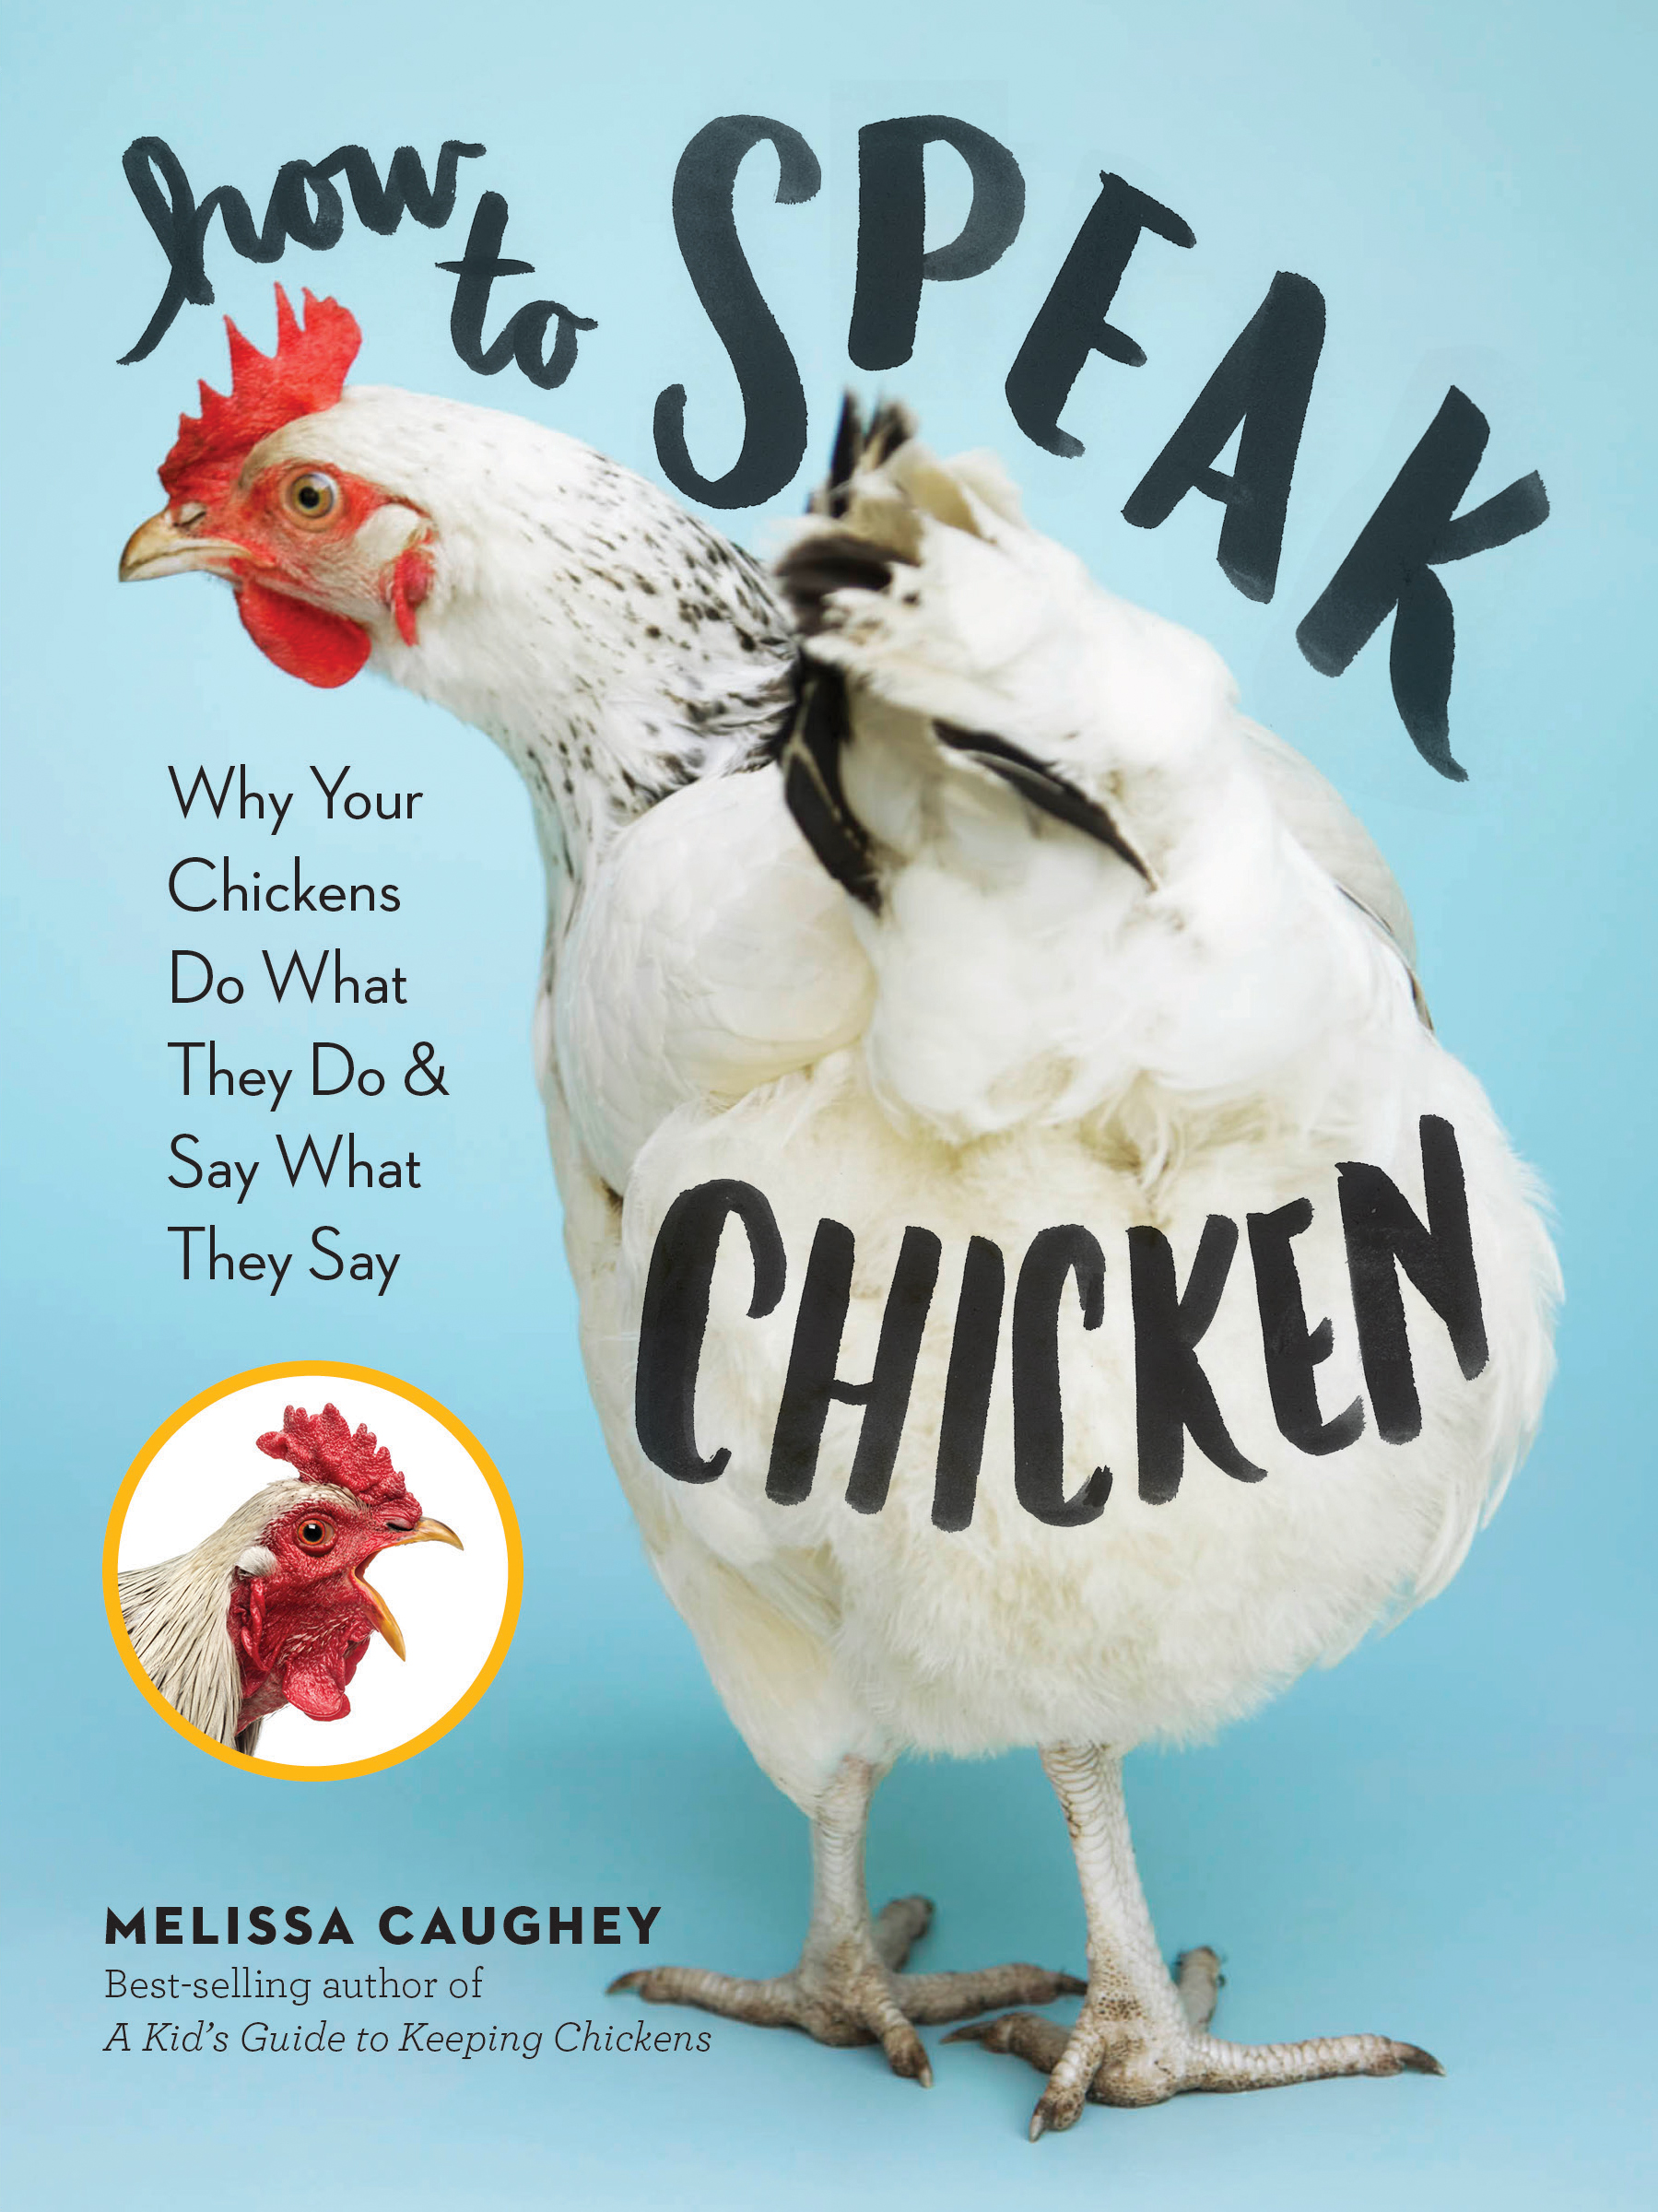 How to Speak Chicken Why Your Chickens Do What They Do & Say What They Say - Melissa Caughey